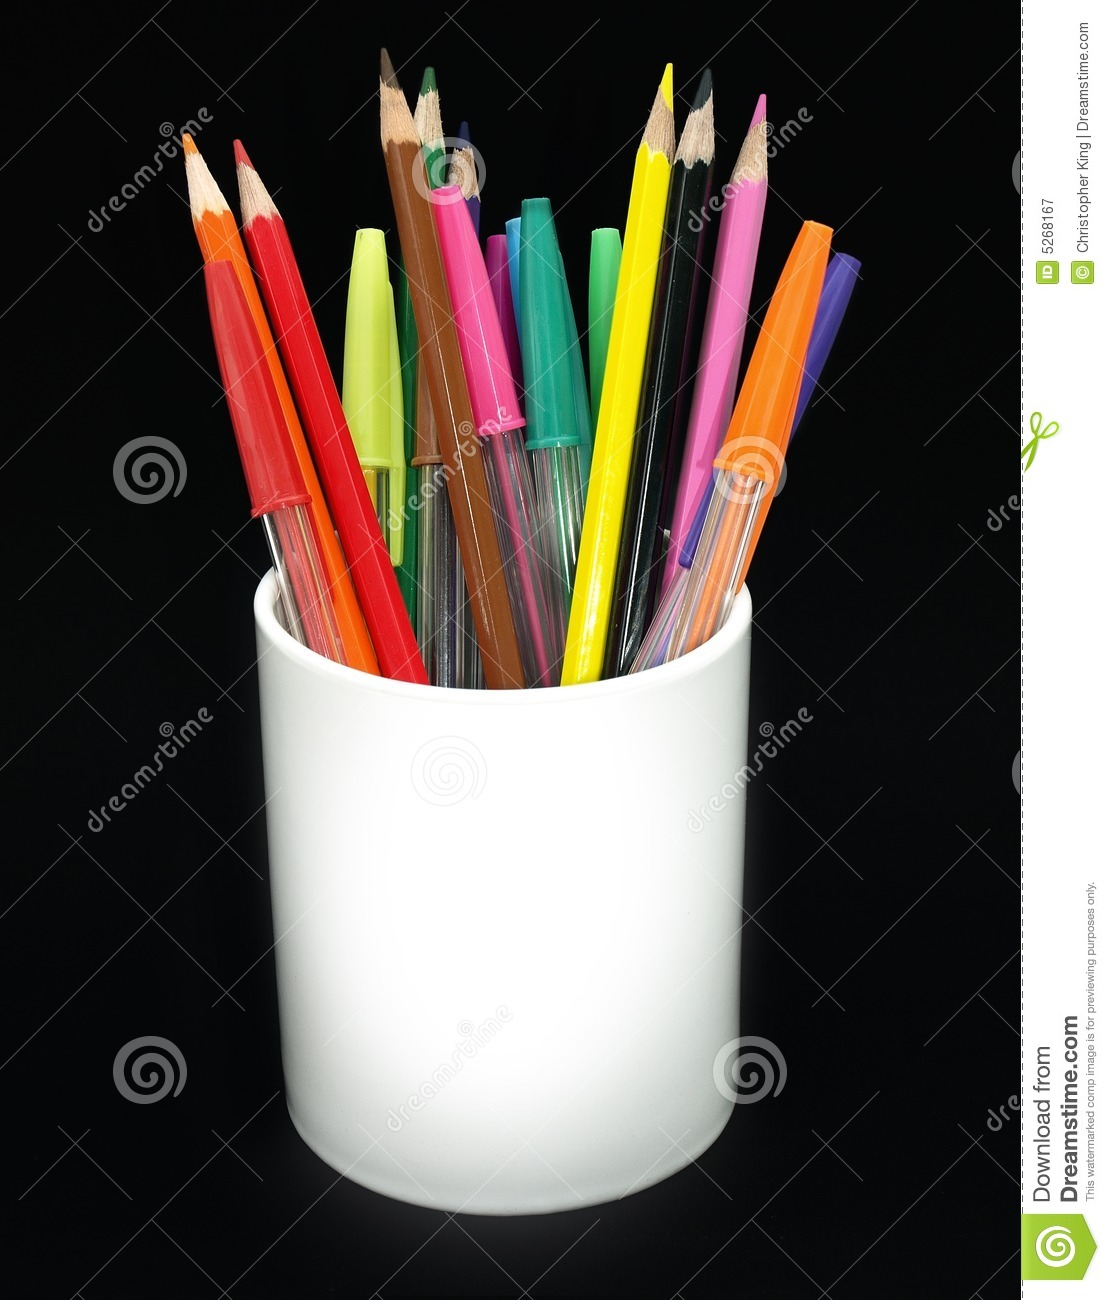 colored pencils and pens in a jar royalty free stock